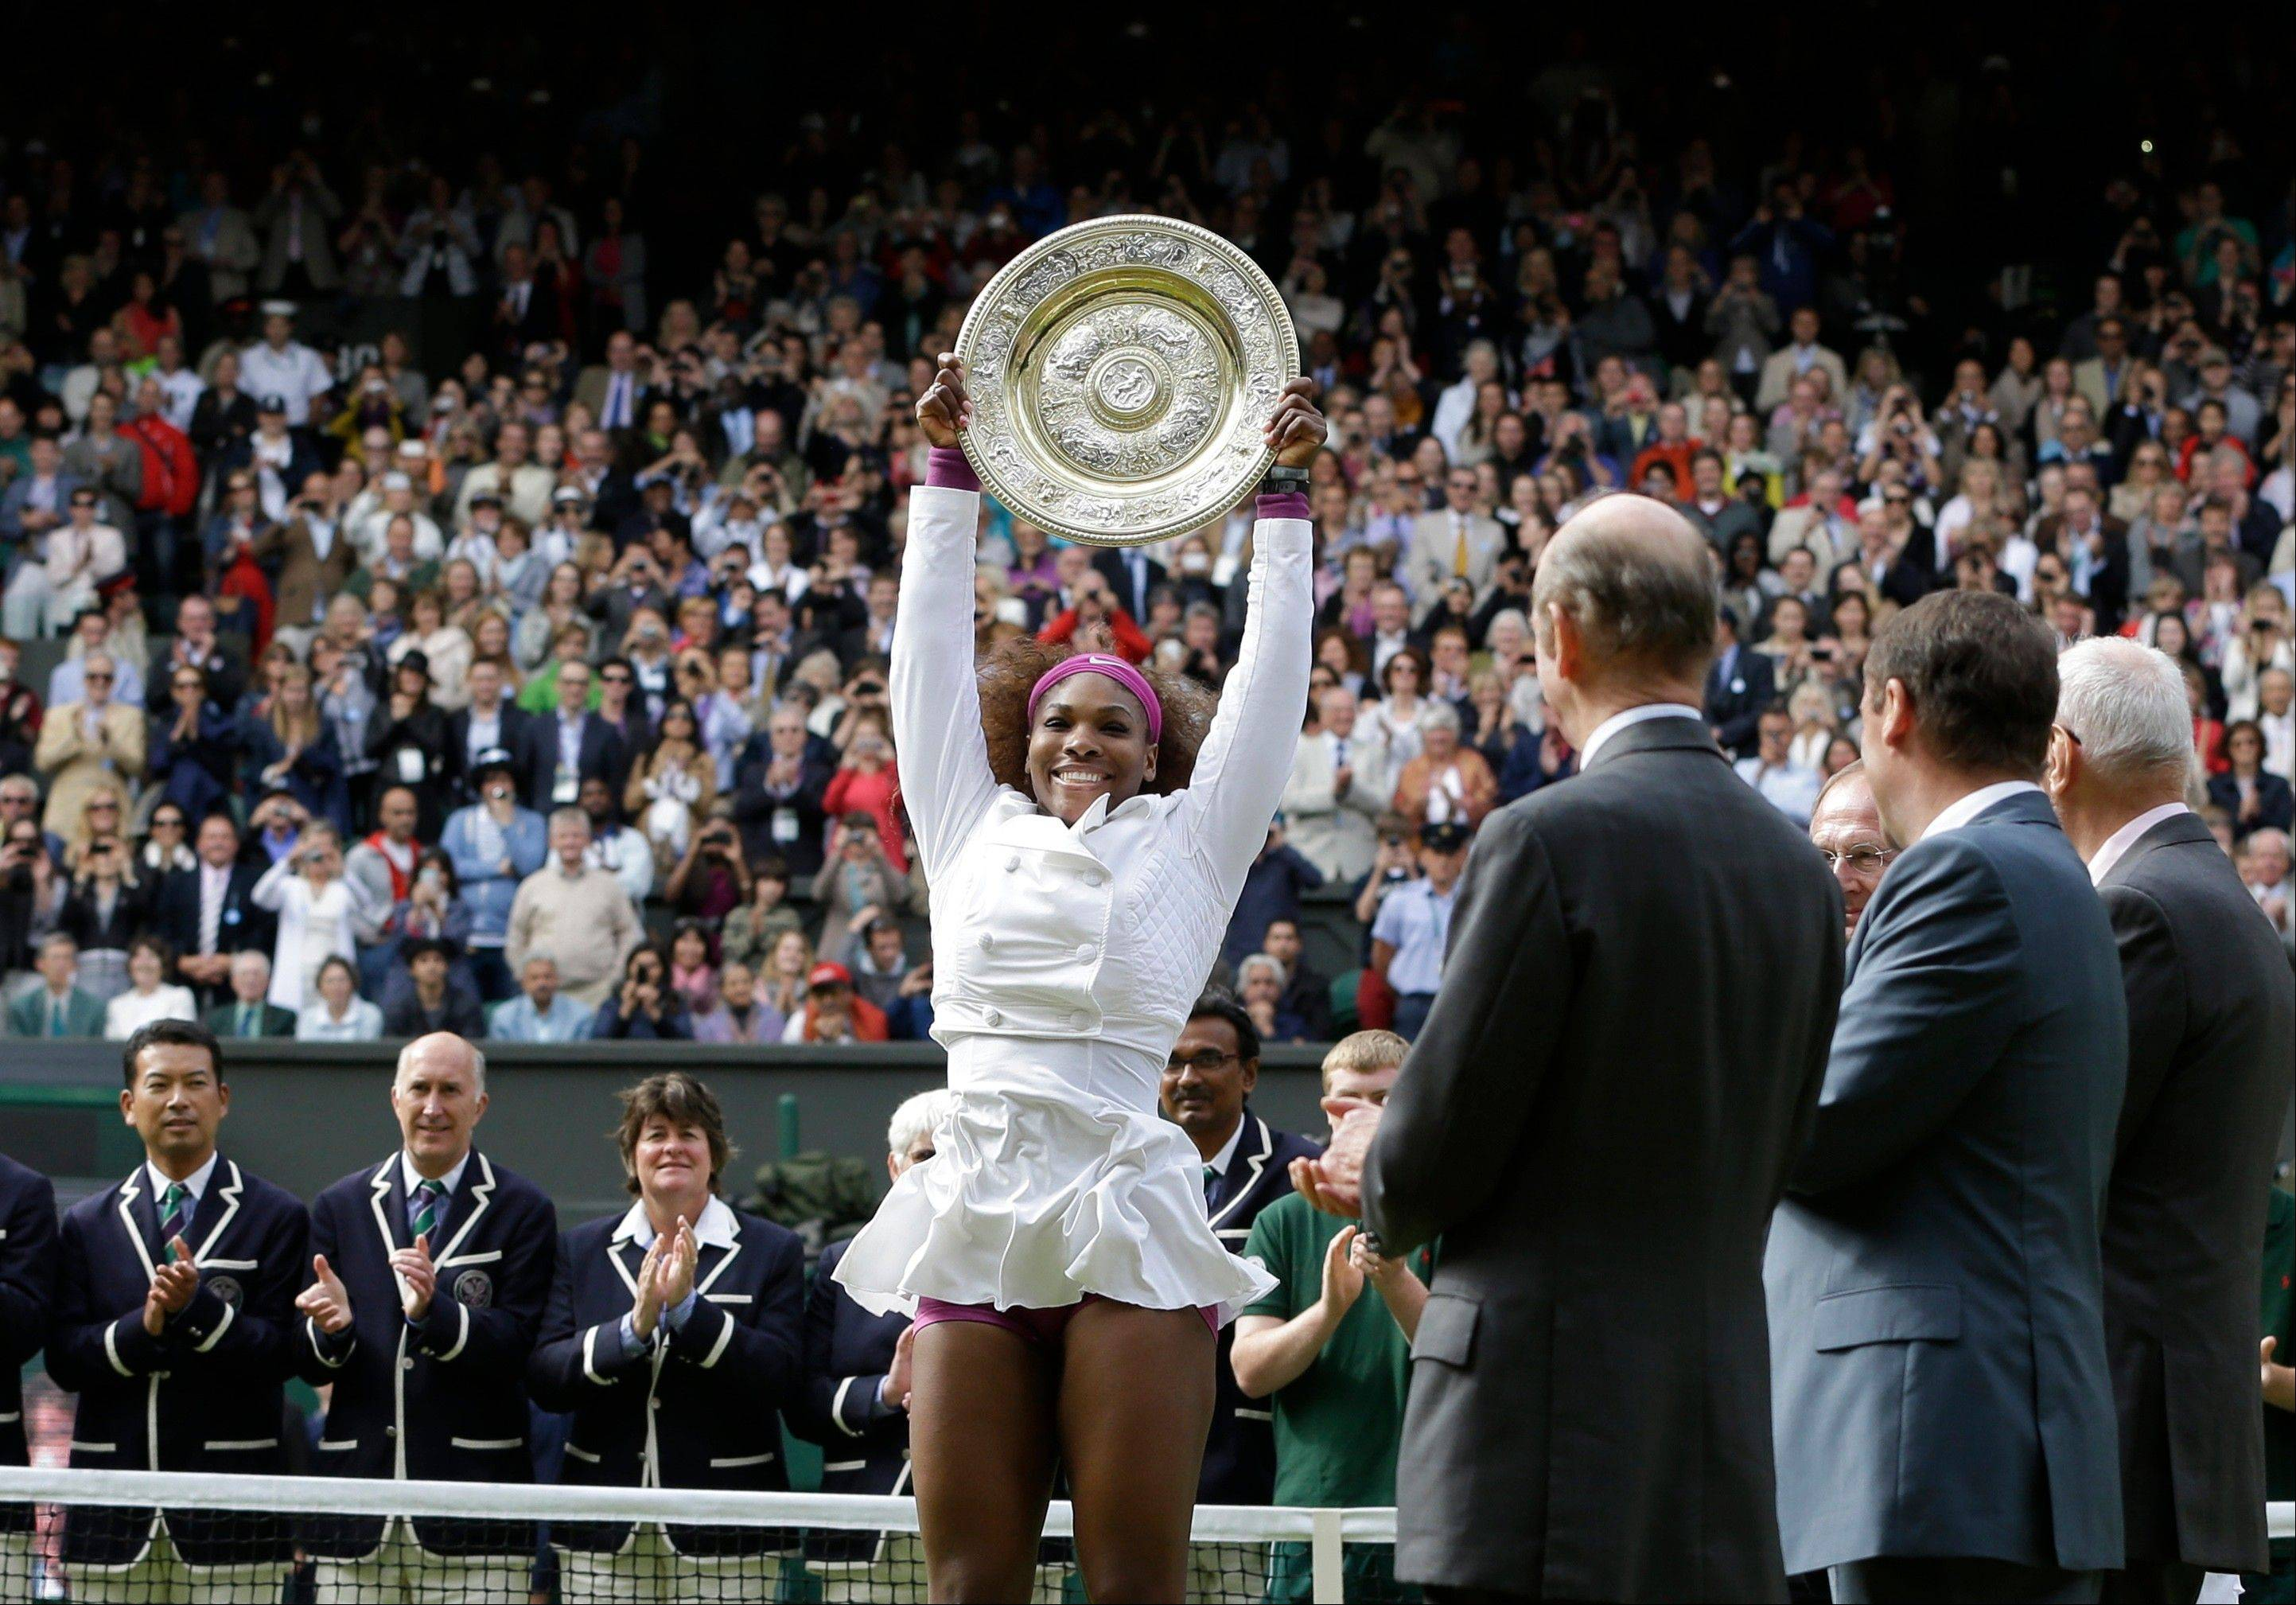 Serena Williams of the United States, center, celebrates with the trophy after defeating Agnieszka Radwanska of Poland to win the women's final match at the All England Lawn Tennis Championships at Wimbledon, England, Saturday, July 7.